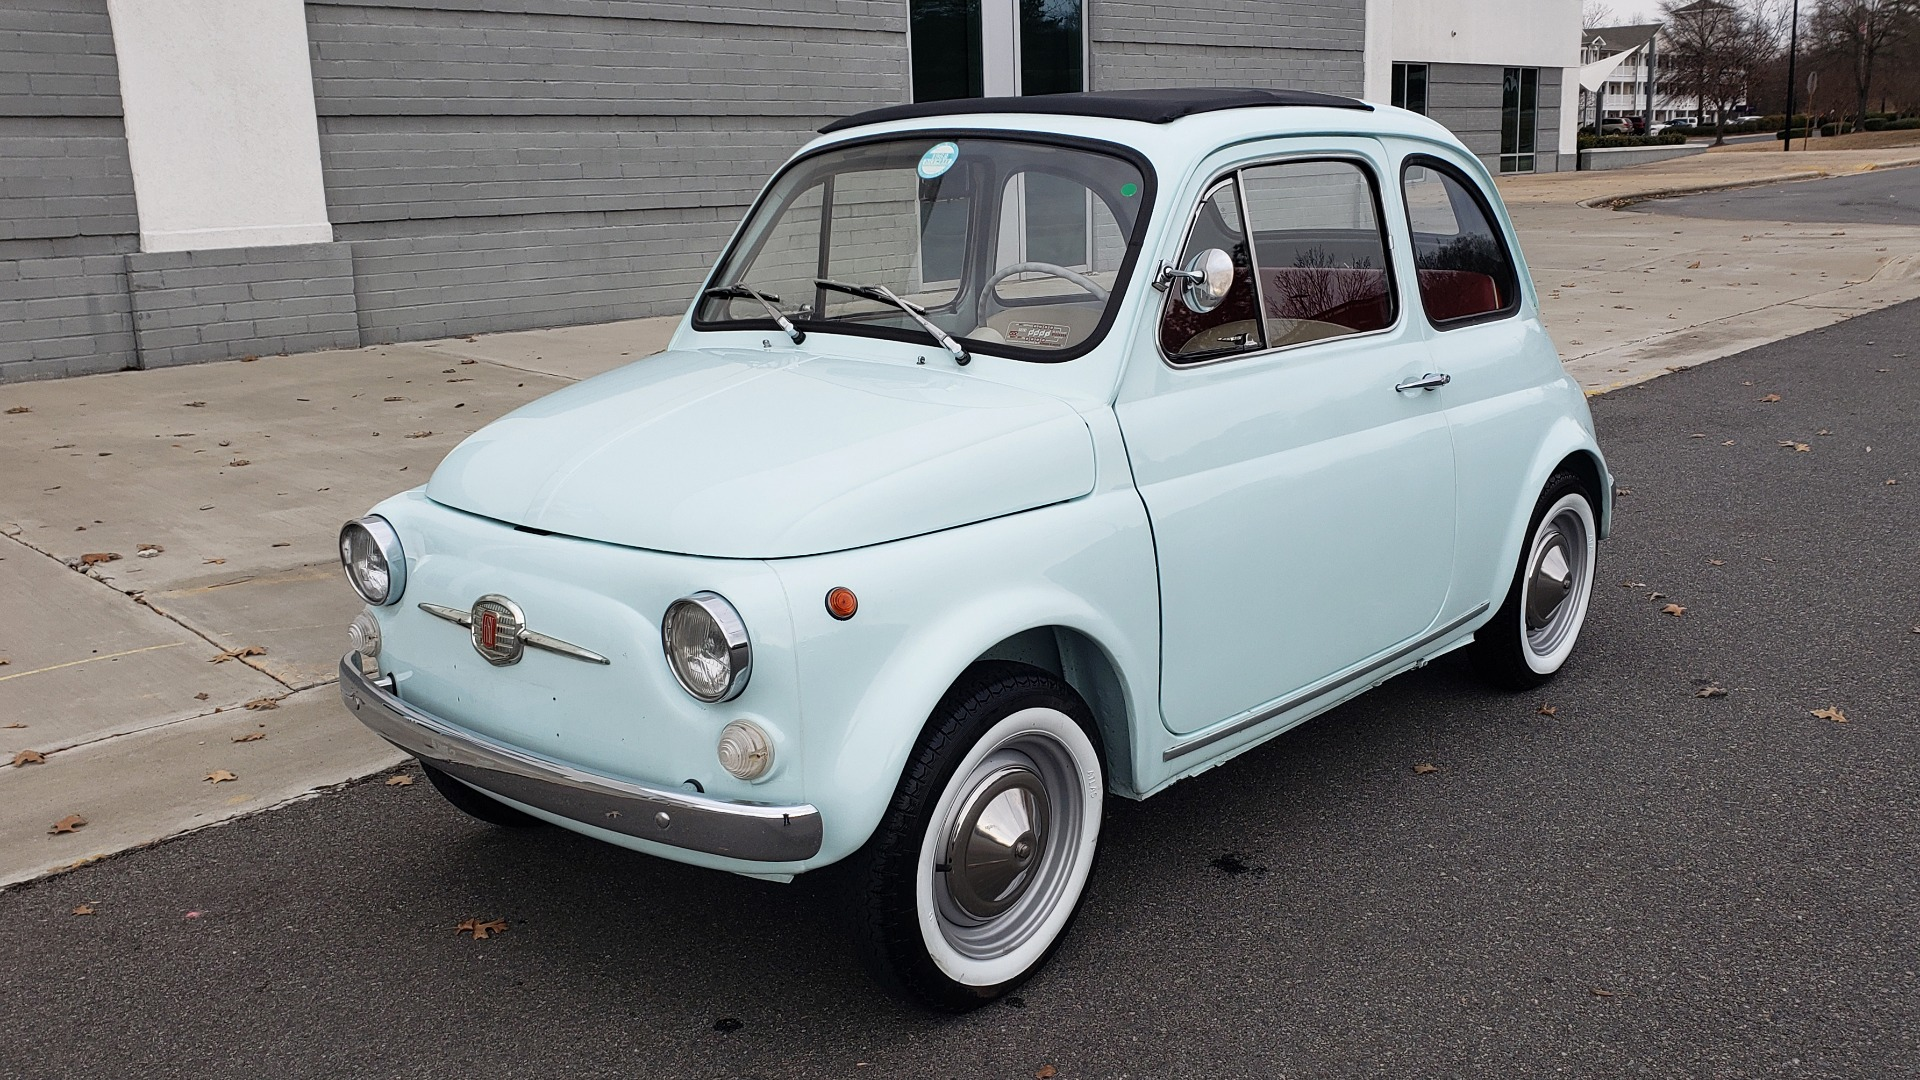 Used 1968 FIAT 500 NUOVA / SOFT-TOP / LUGGAGE RACK / RESTORED, LIKE NEW for sale $21,900 at Formula Imports in Charlotte NC 28227 1